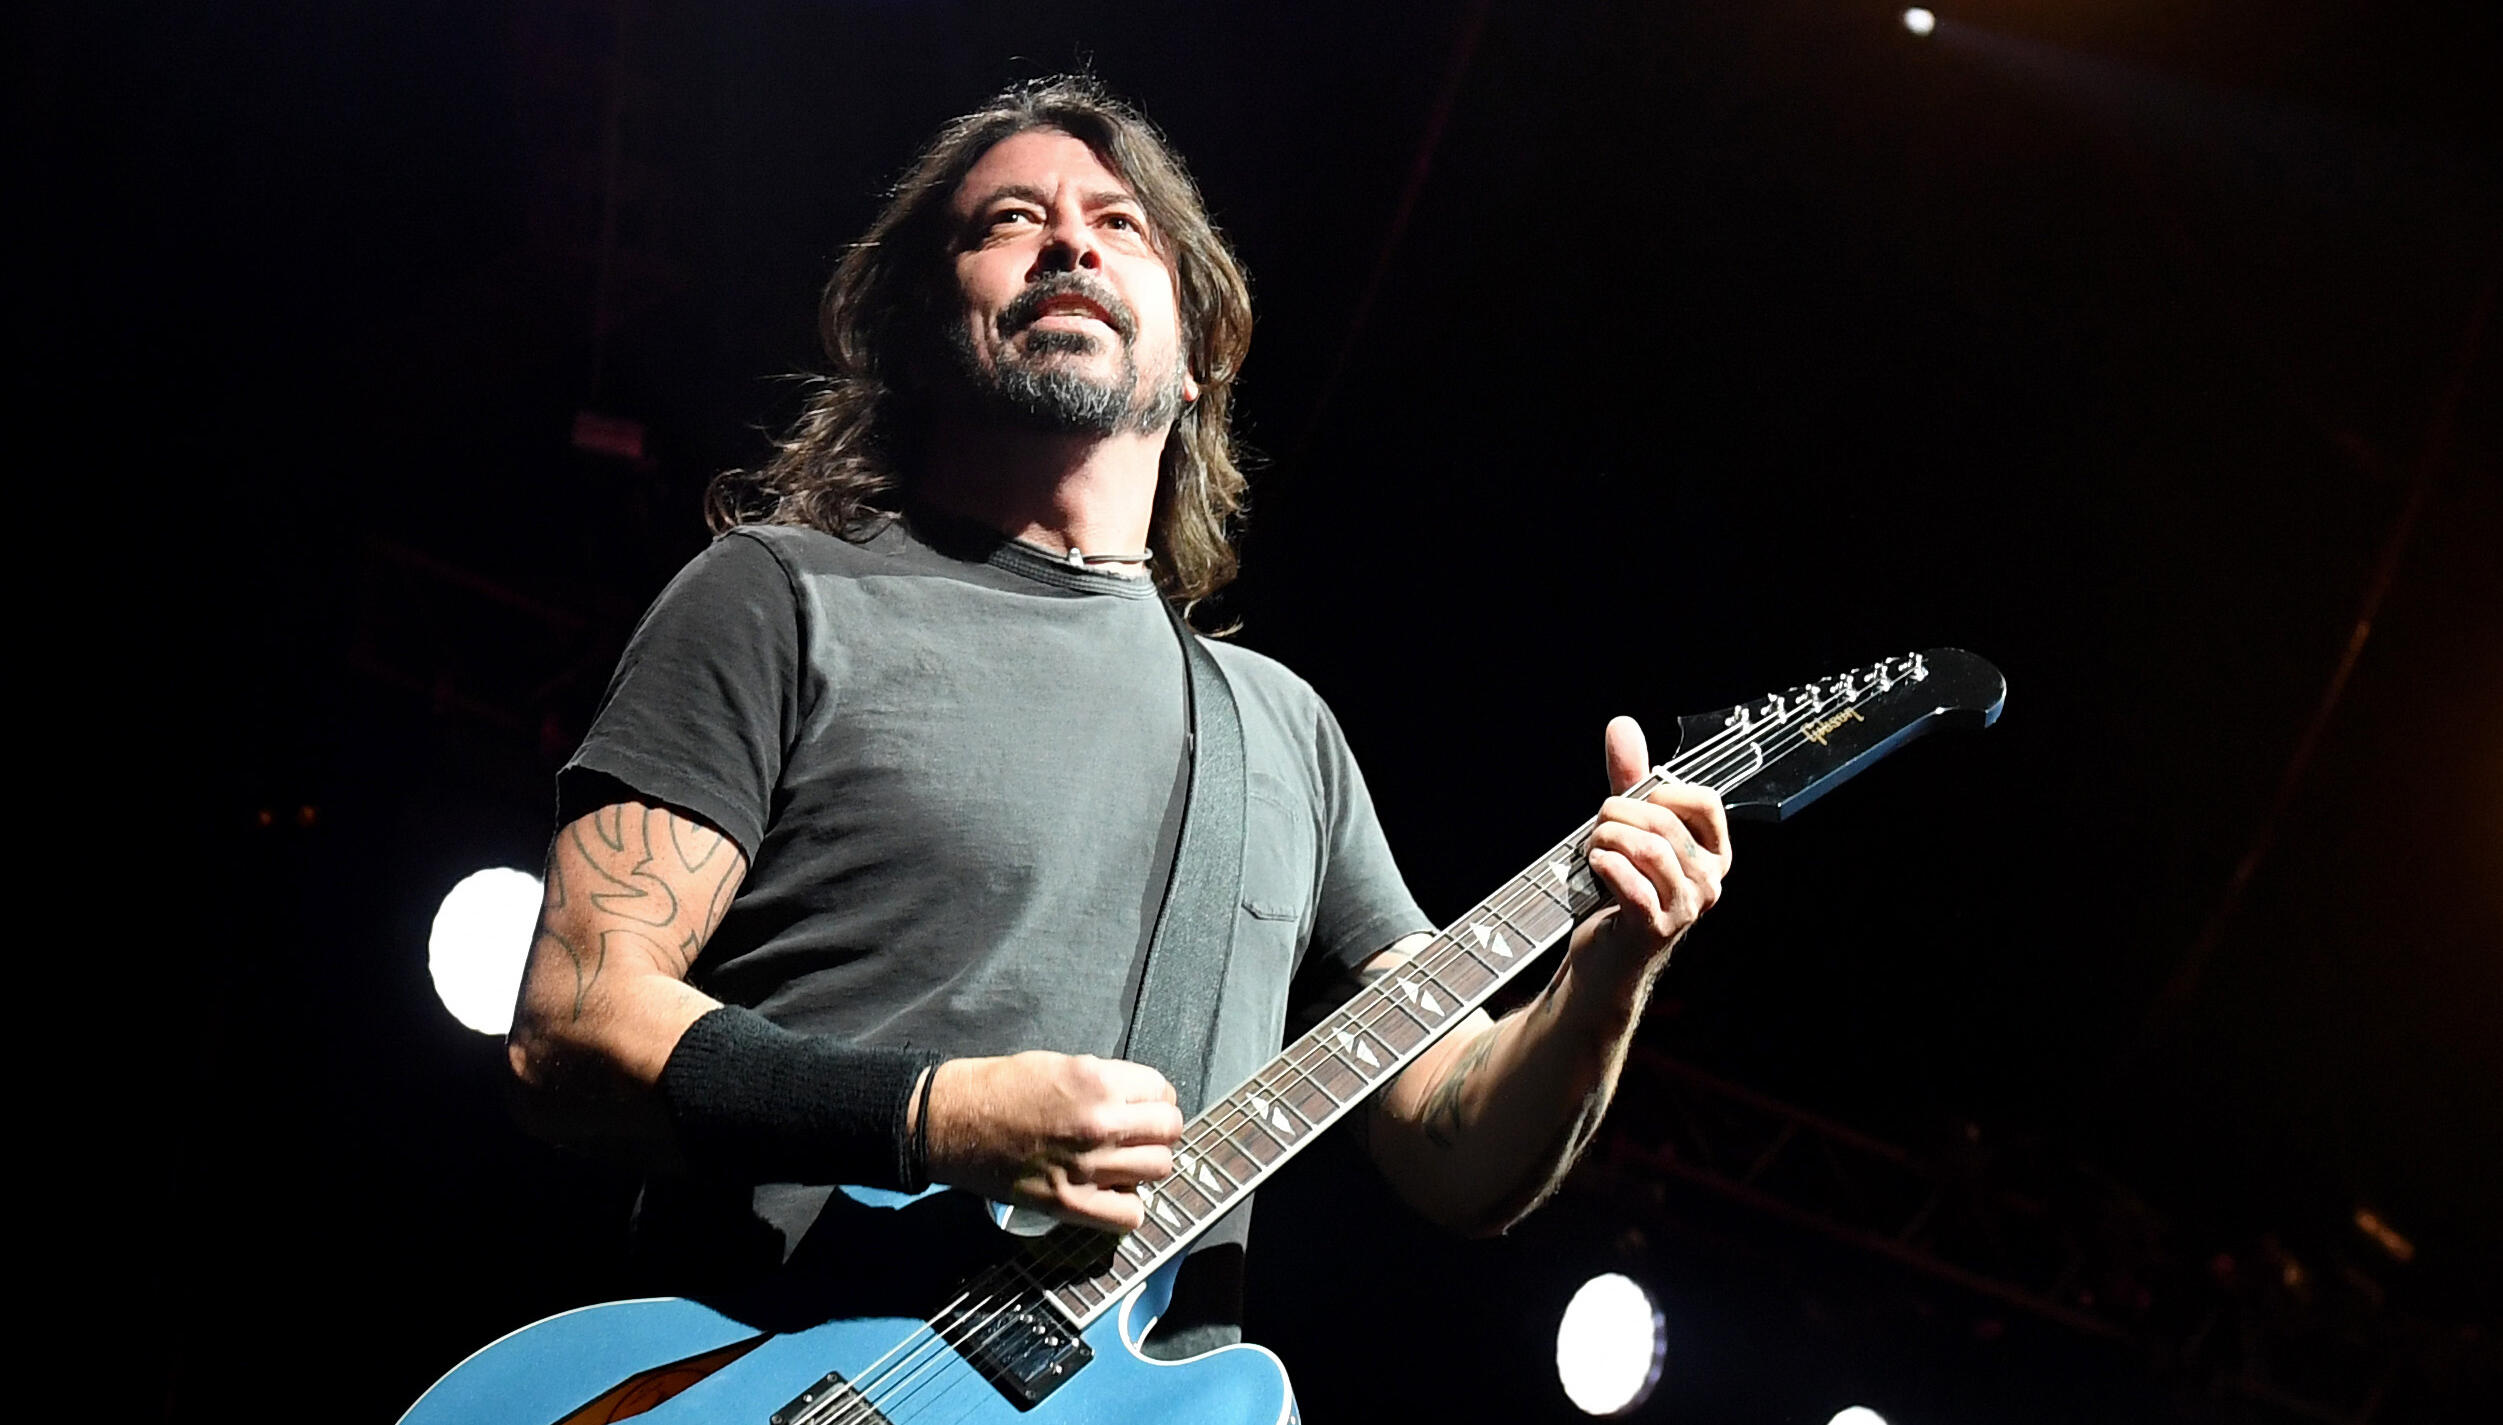 Watch The Trailer For The New Career-Spanning Dave Grohl Documentary